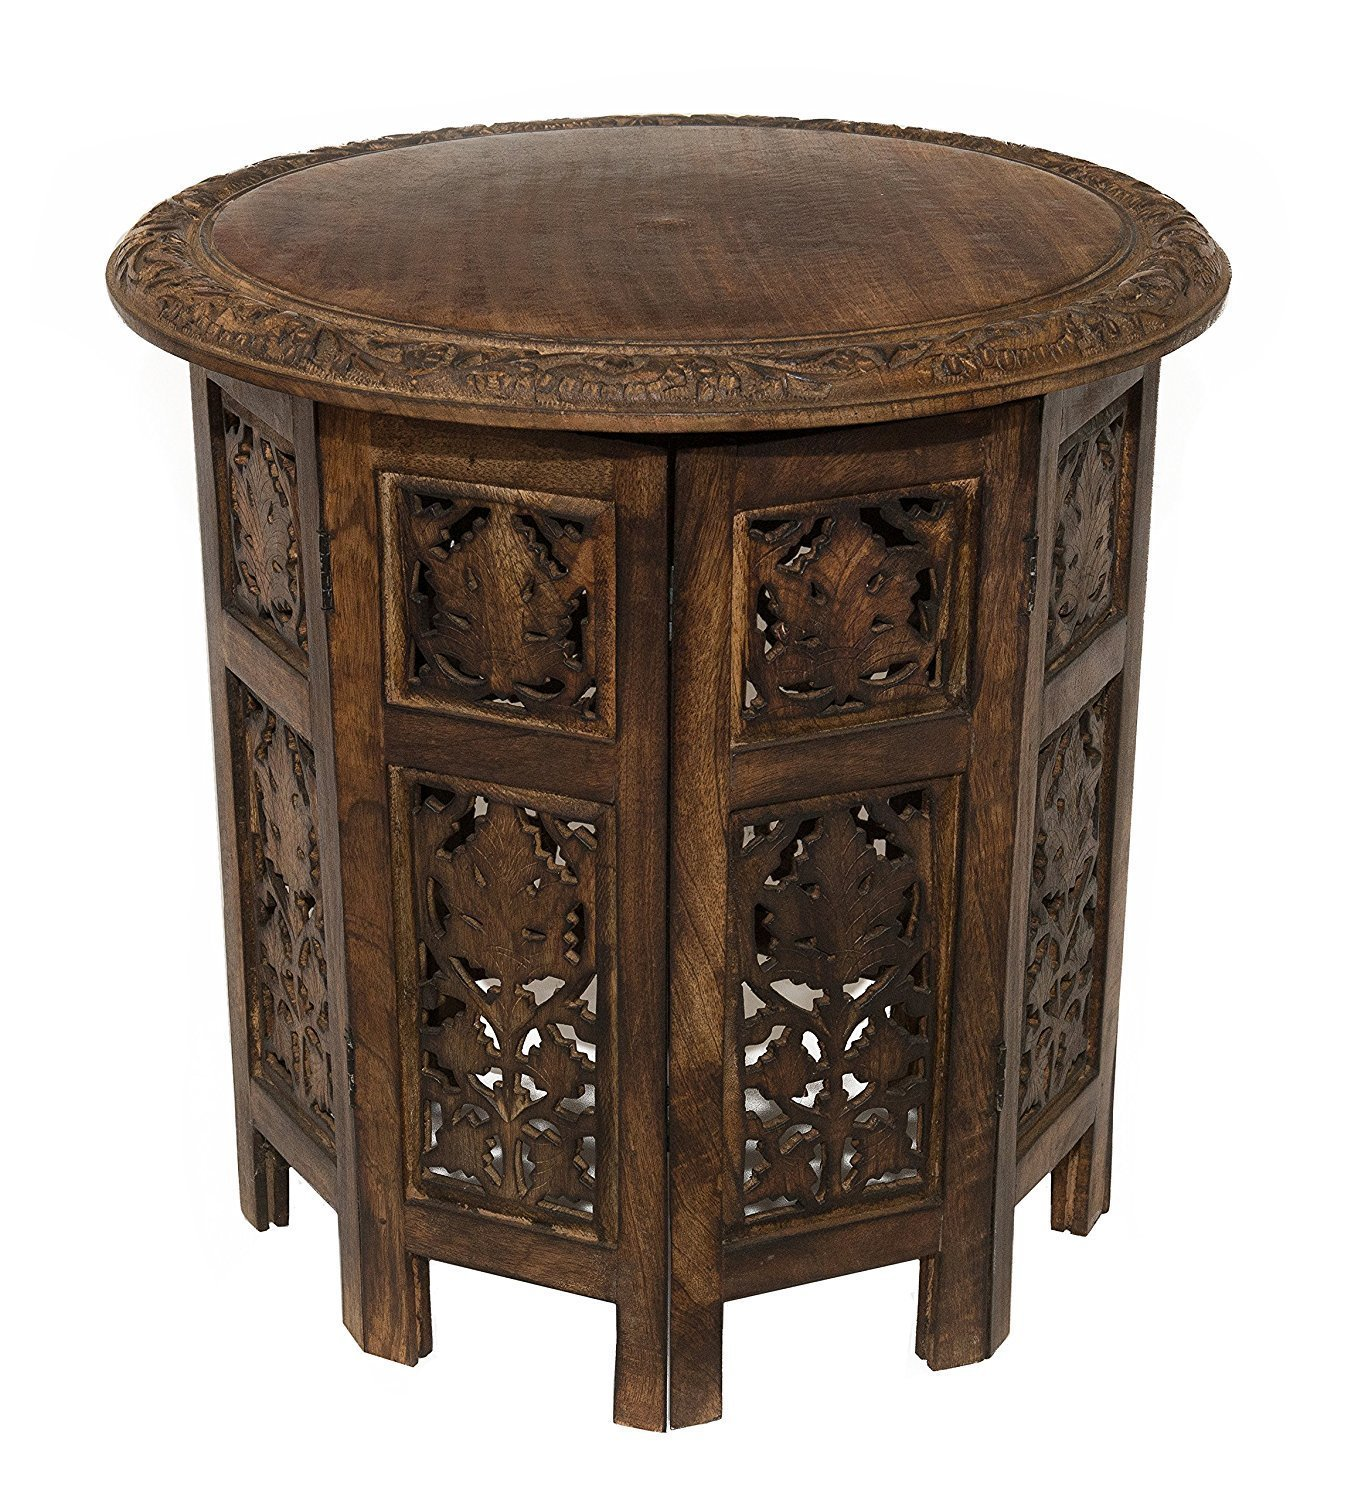 artesia solid wood hand carved rajasthan folding accent low height table coffee inch round top high brown kitchen dining bar furniture modern and metal farmhouse style antique